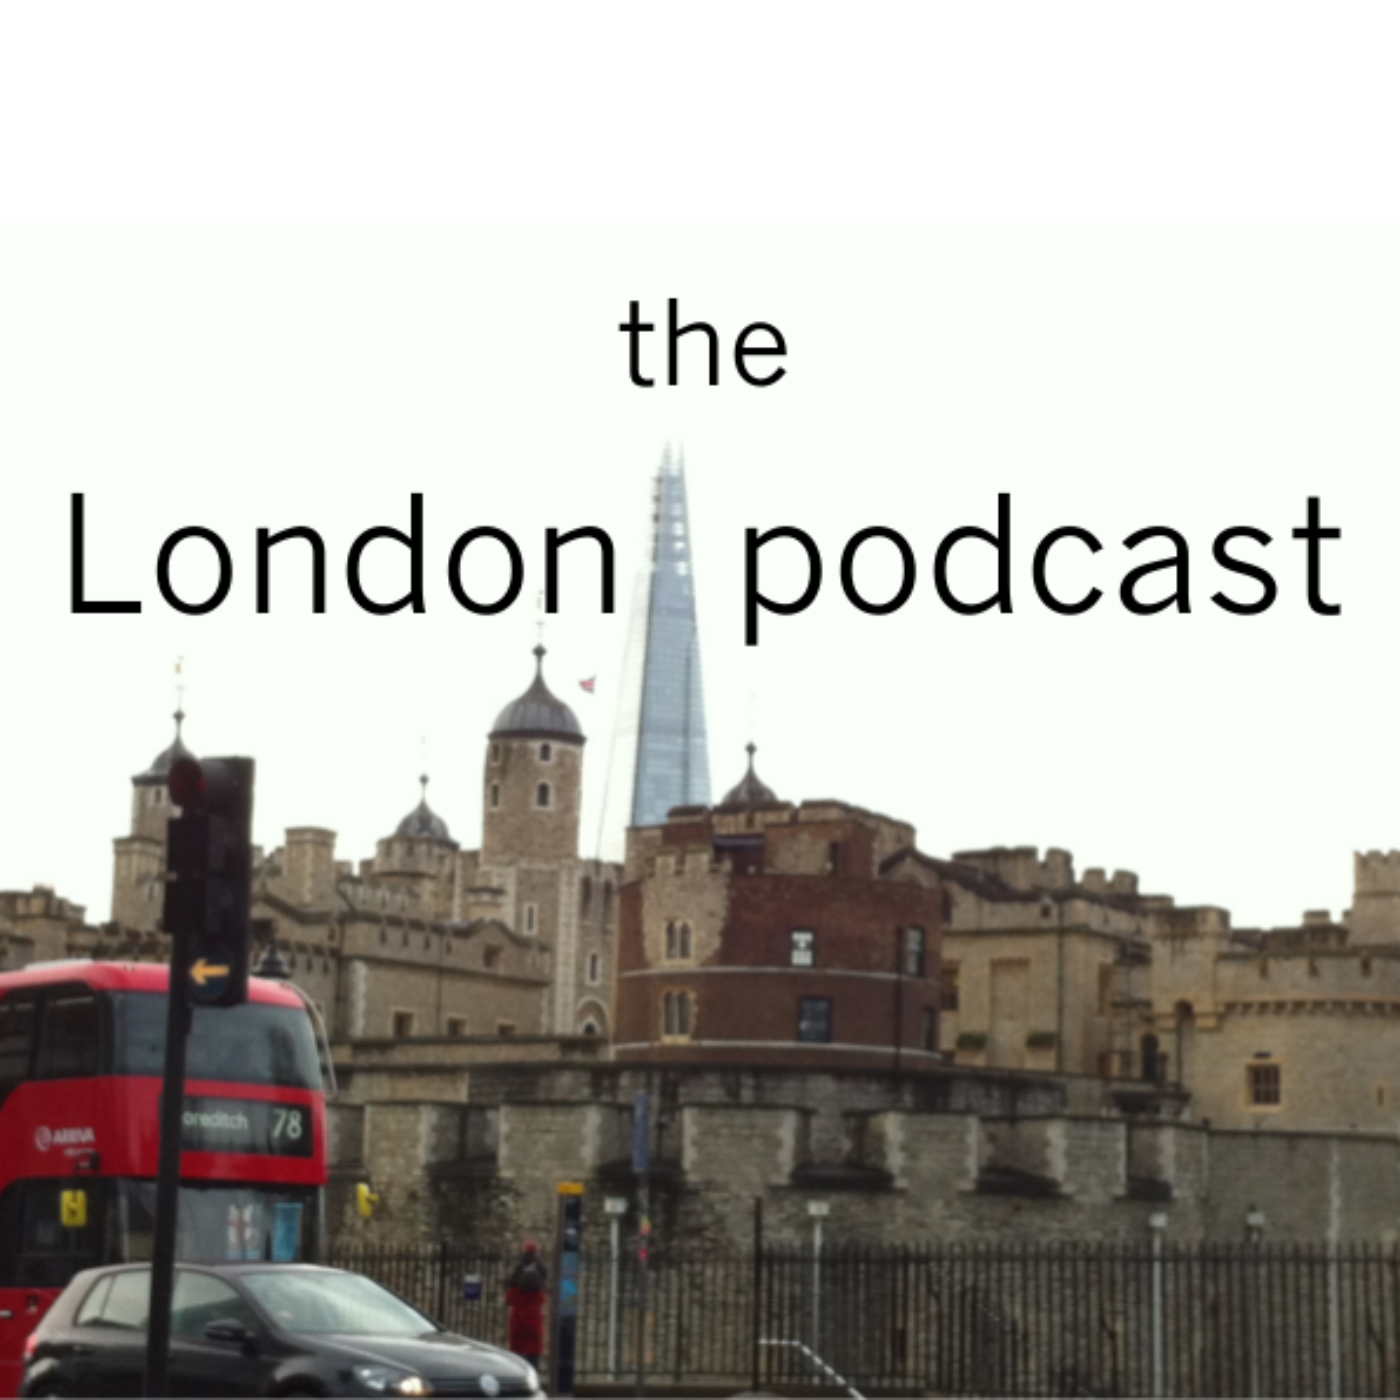 The London Podcast